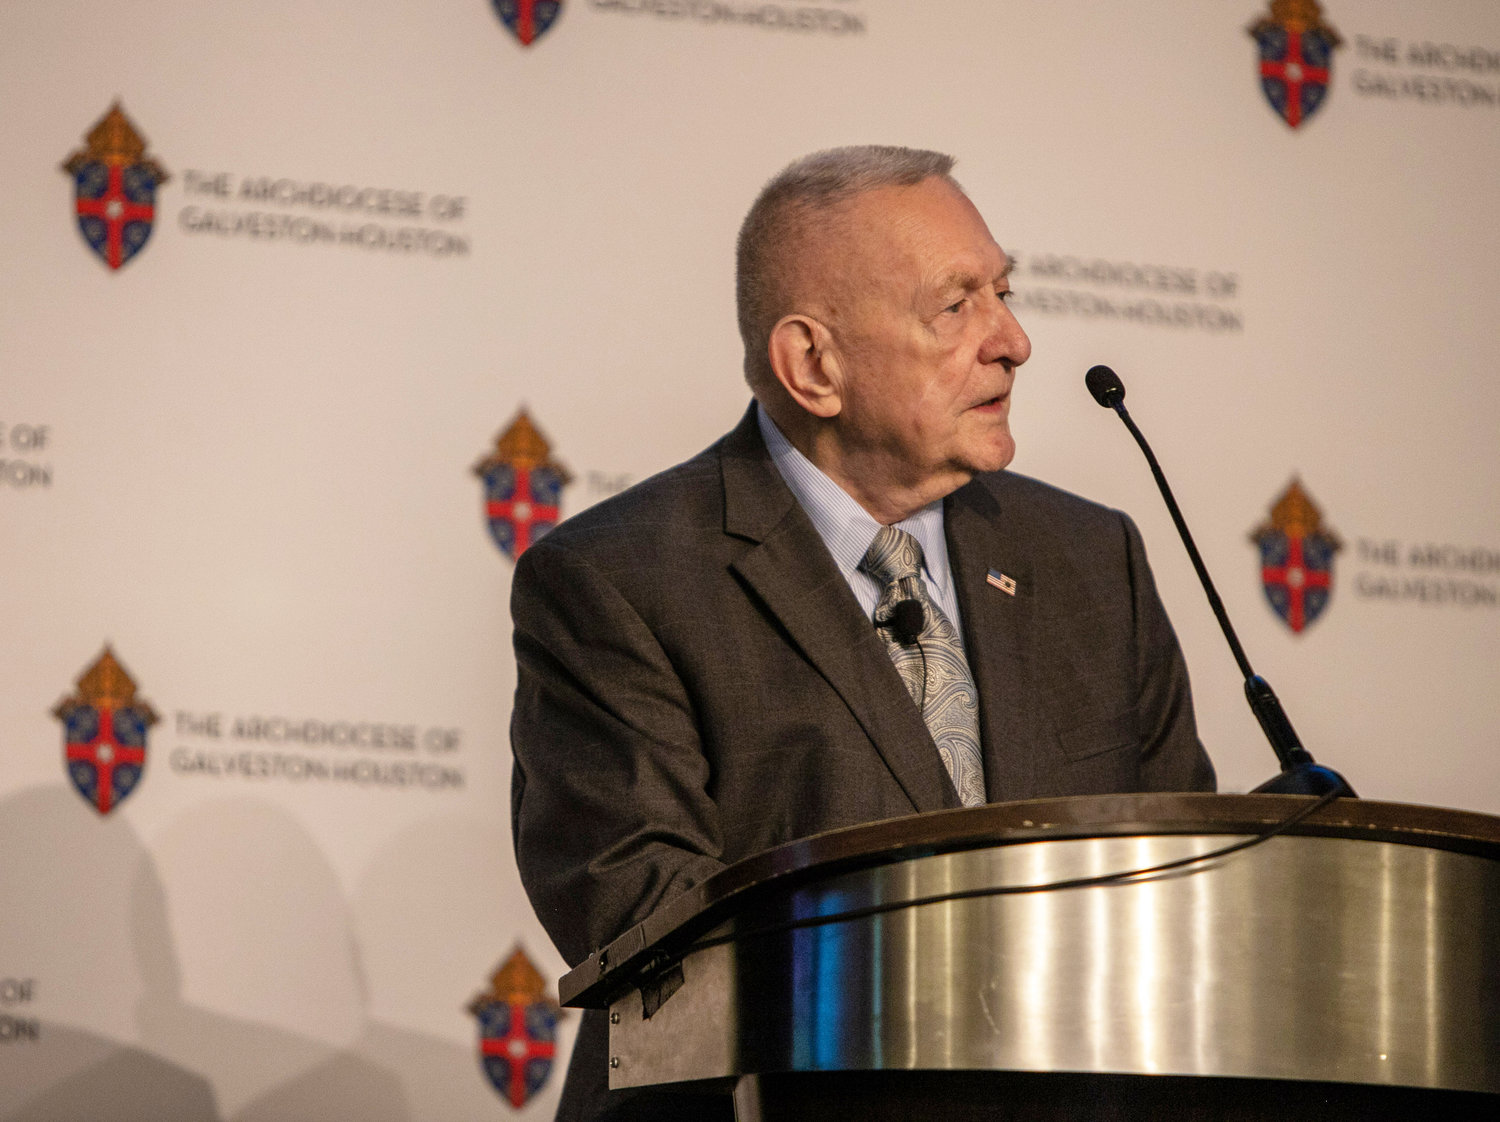 Gene Kranz, former flight director for Apollo 11, speaks during the 2019 Archdiocese of Galveston-Houston Prayer Breakfast in Houston July 30. Kranz, who served as the event's speaker, is a parishioner at Shrine of the True Cross Catholic Church in Dickinson, Texas, near Houston.